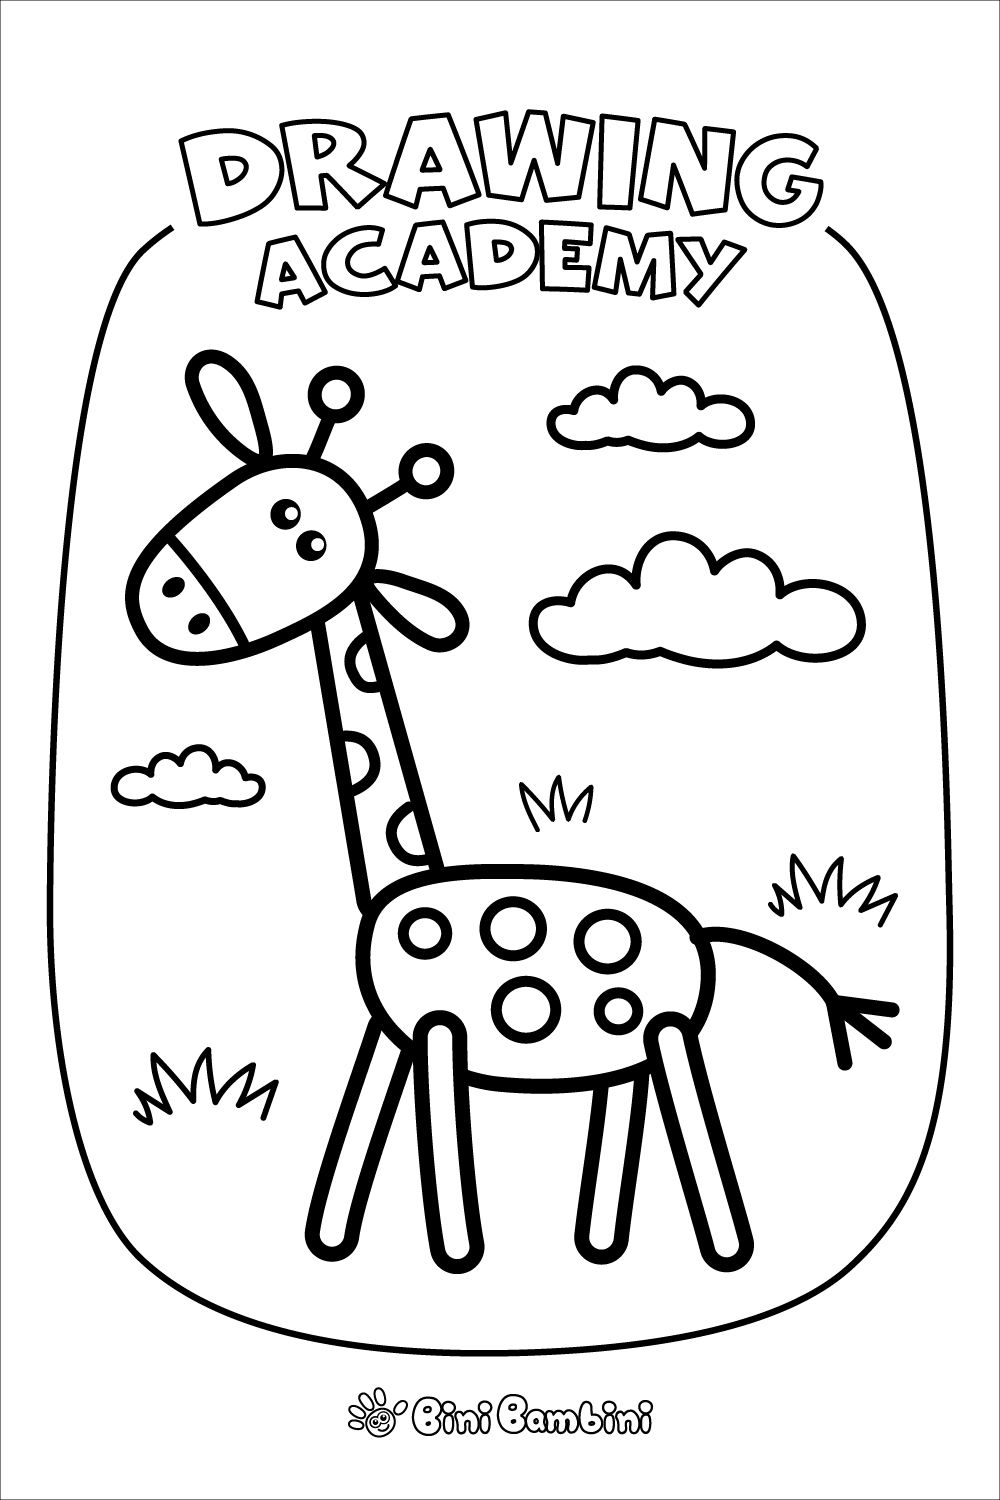 Coloring Pages For Kids Learning Apps Drawing Games For Kids Coloring Pages For Kids Kids Learning Apps